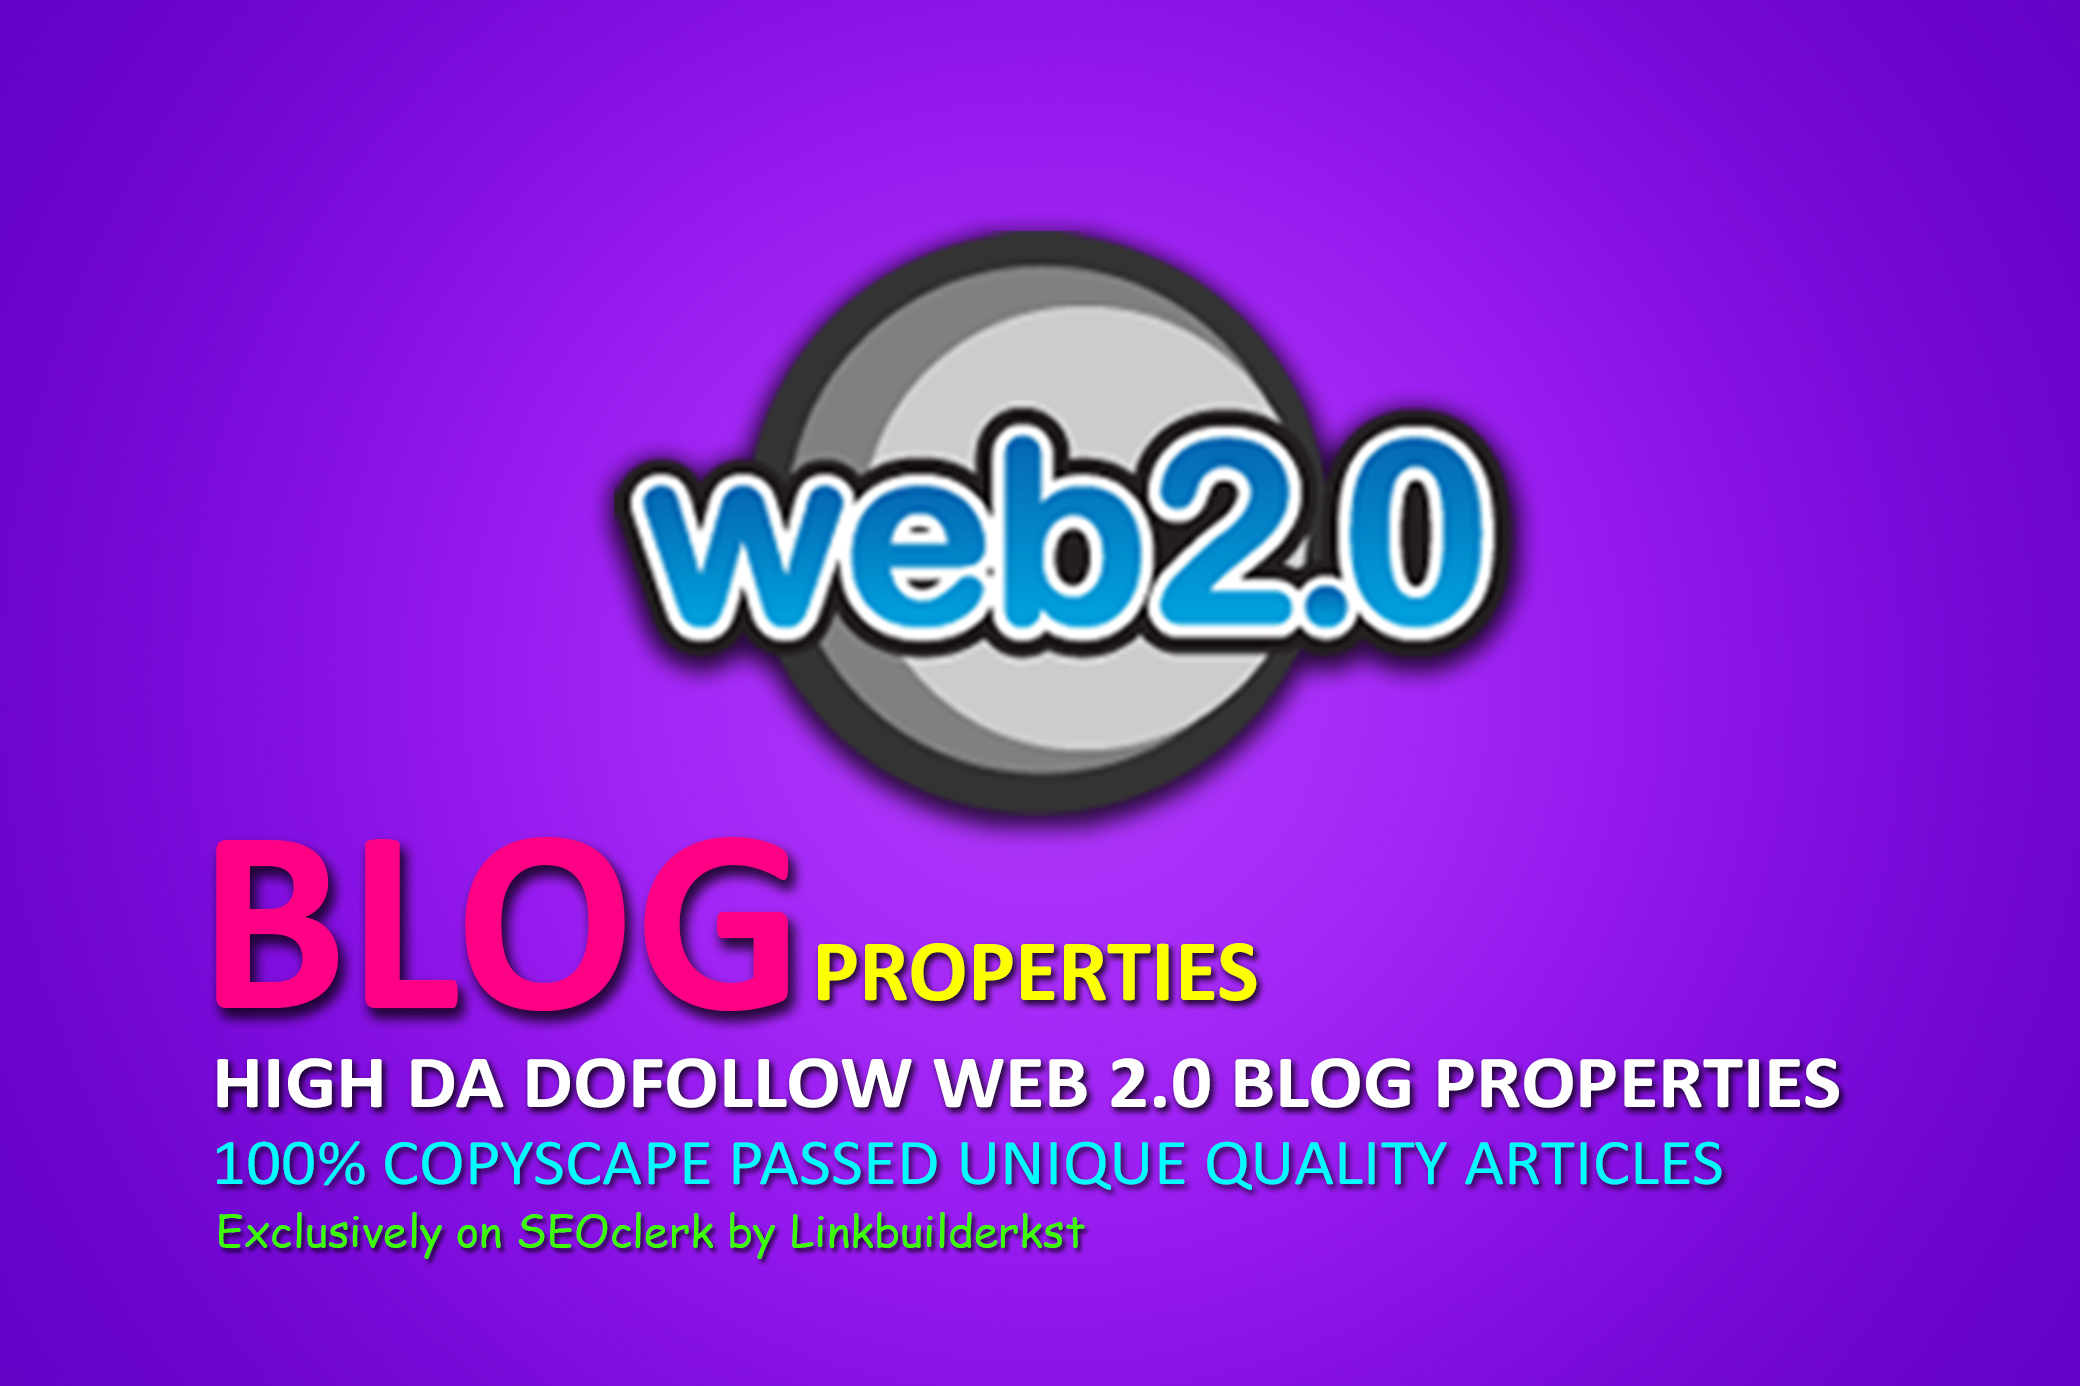 Handmade Dofollow Web 2.0 Blog Properties With Login, Unique Content, Image And Video